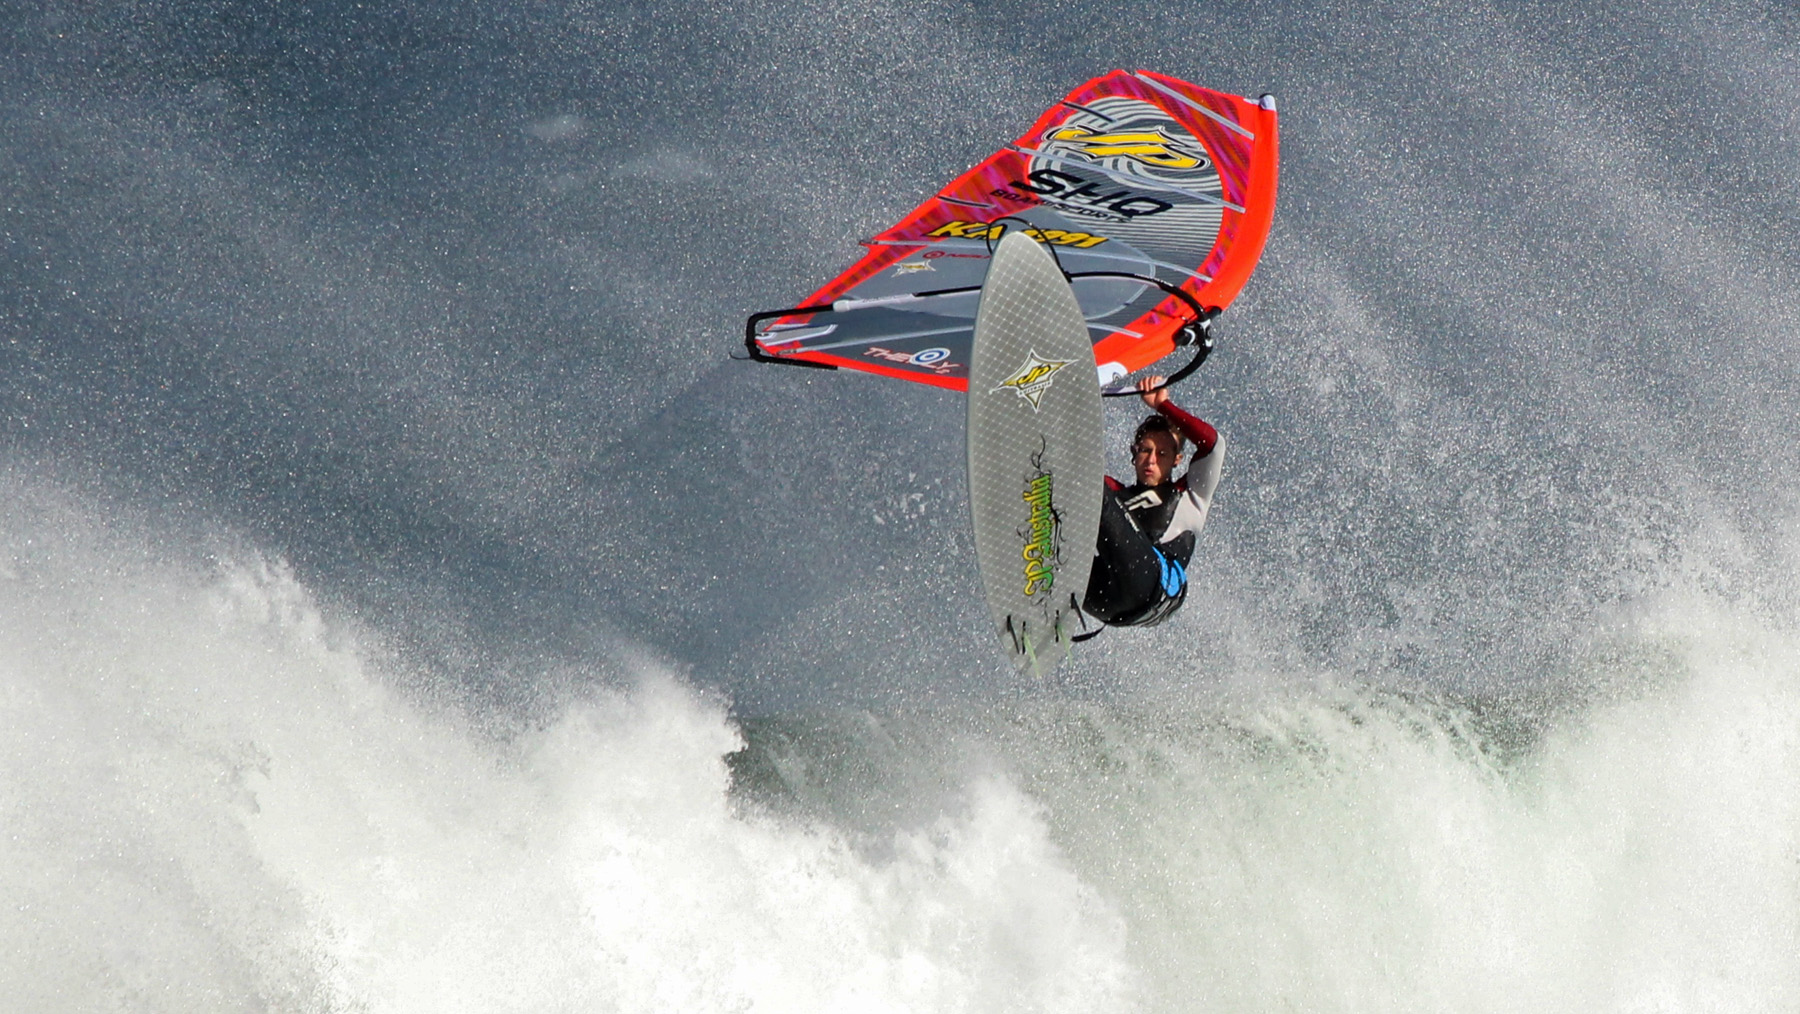 winter windsurfing at poo point 13th beach